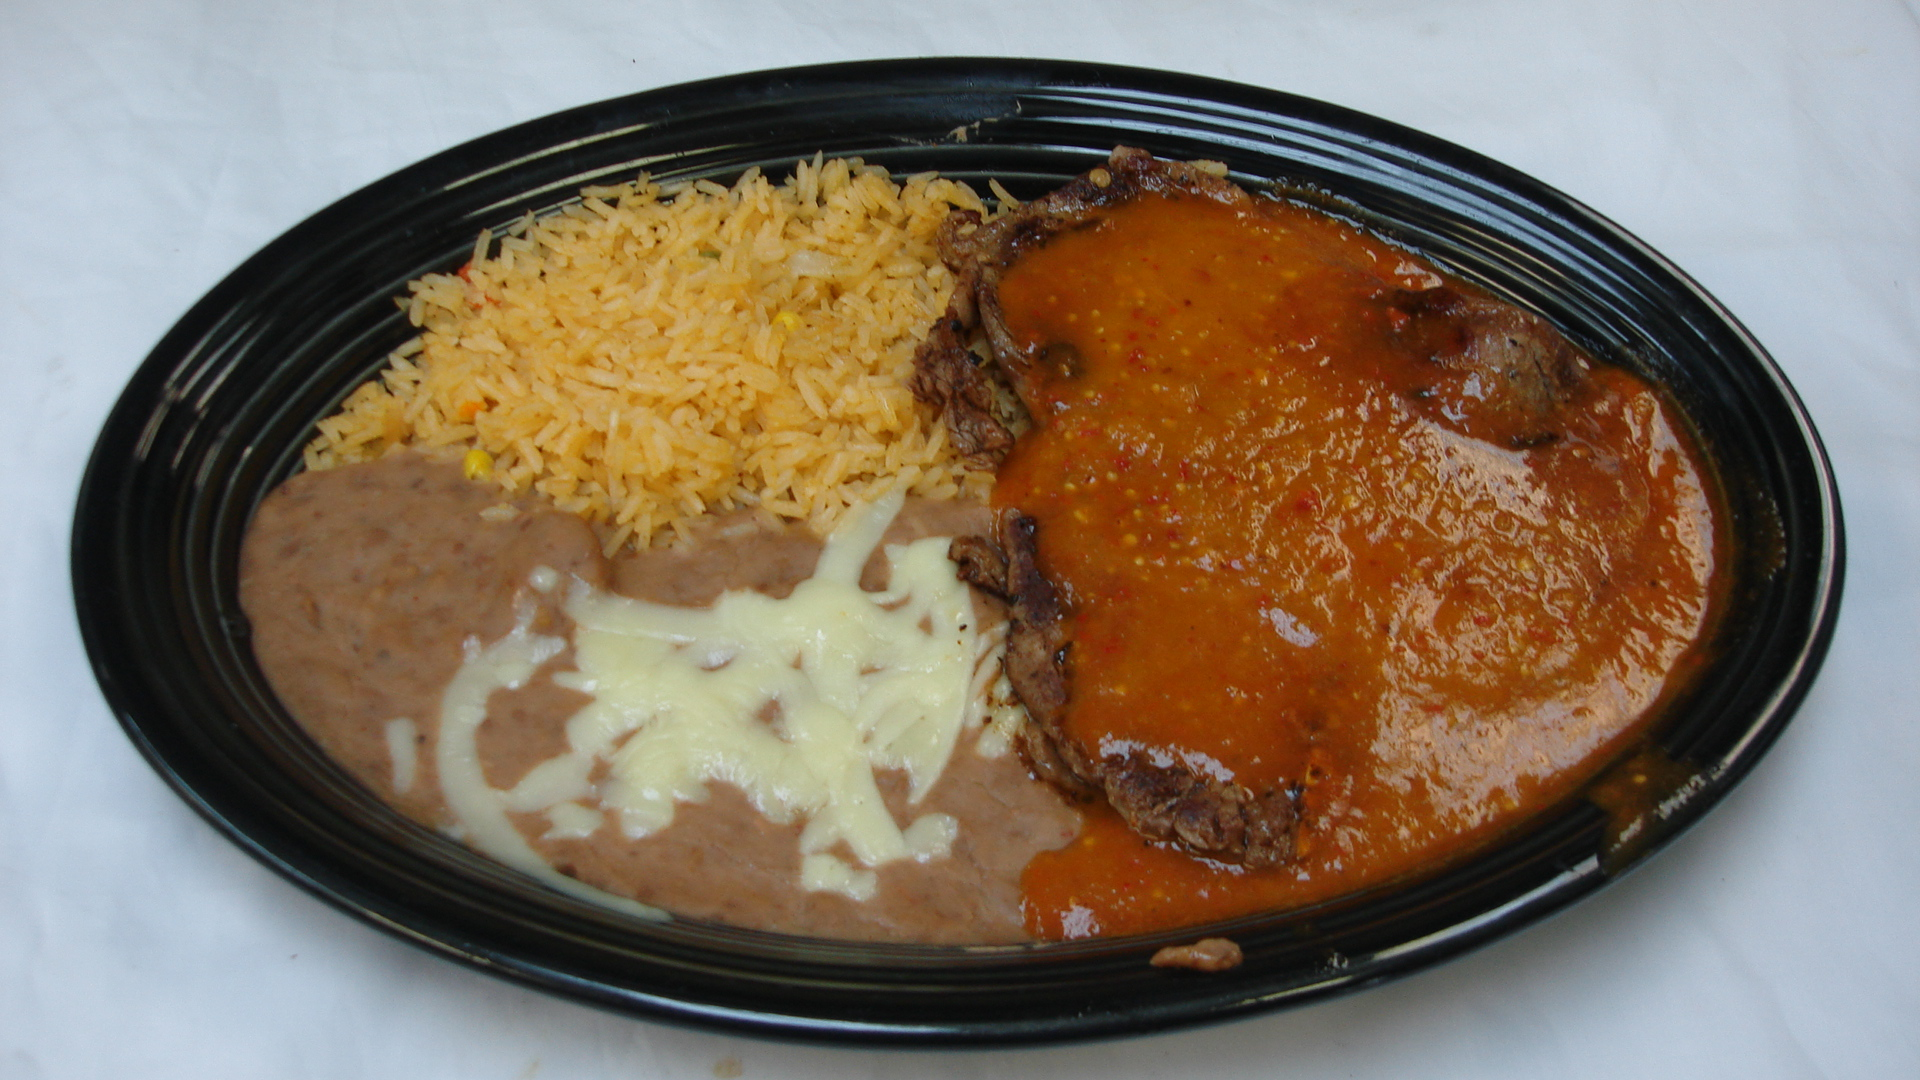 Steak Ranchero - Grilled 10 oz. T-bone steak cooked with our spicy special sauce and served with rice and beans.